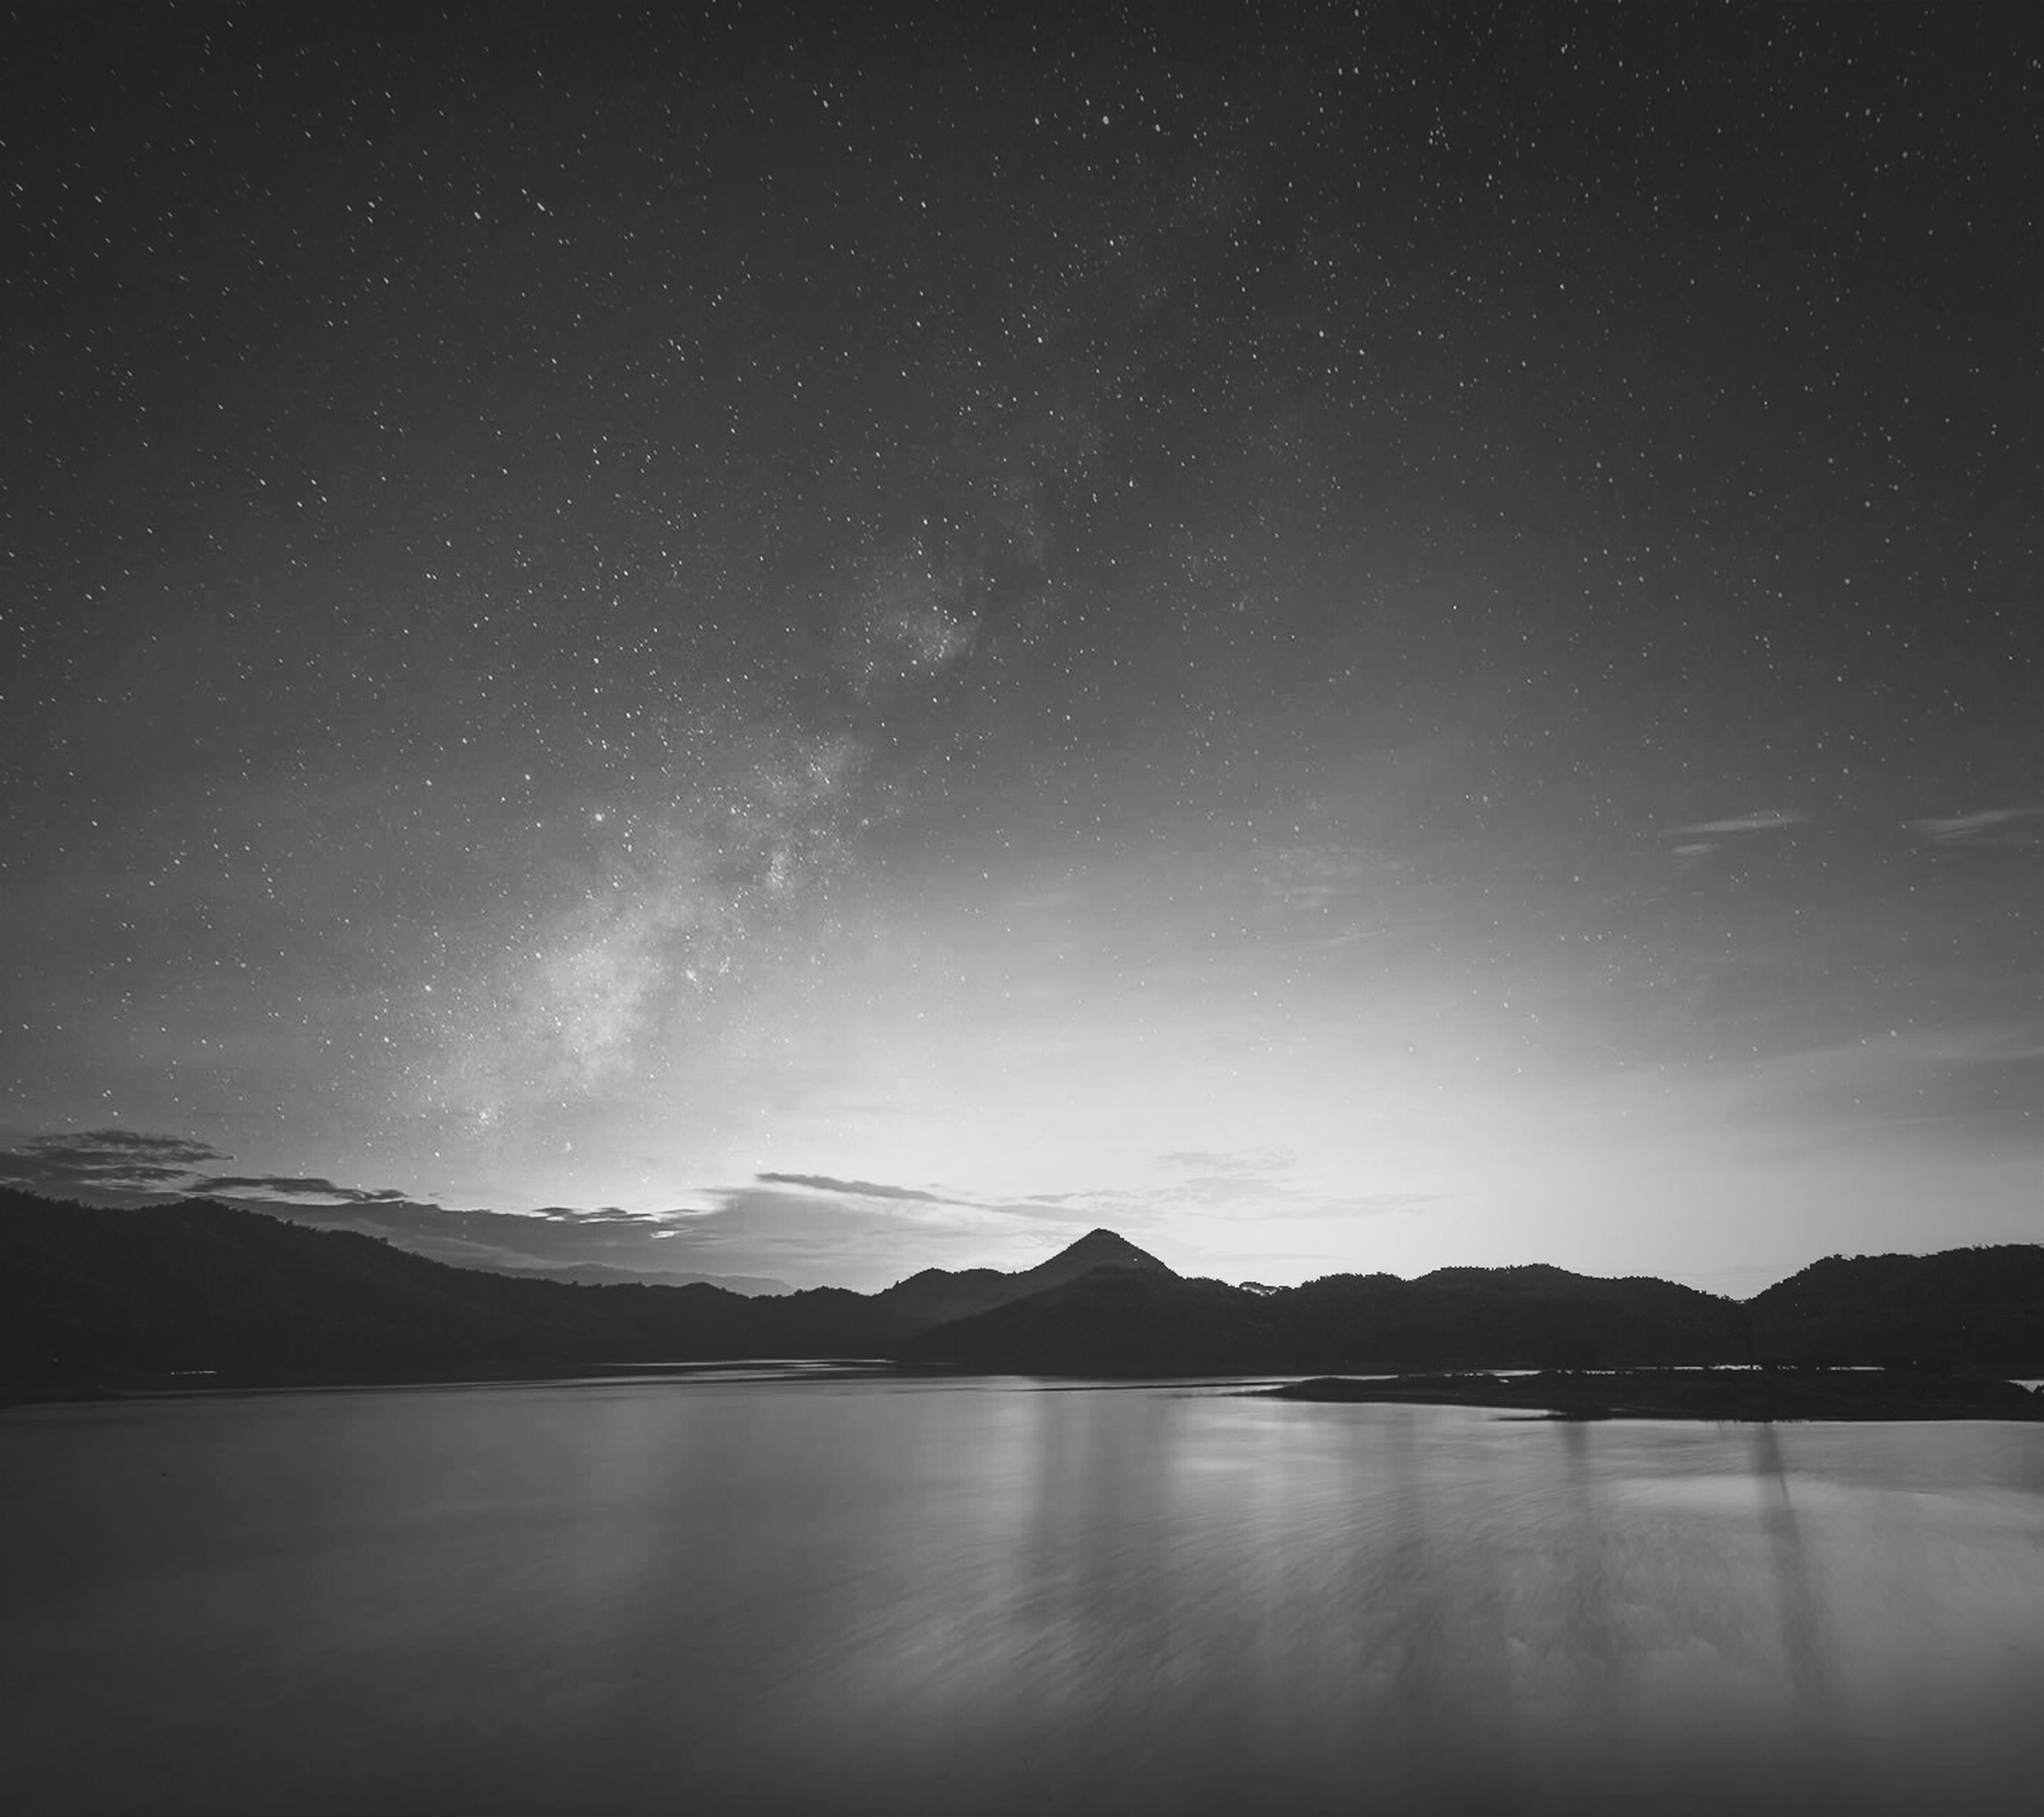 tranquil scene, scenics, tranquility, night, beauty in nature, star - space, star field, sky, nature, water, astronomy, mountain, idyllic, majestic, lake, landscape, mountain range, galaxy, reflection, silhouette